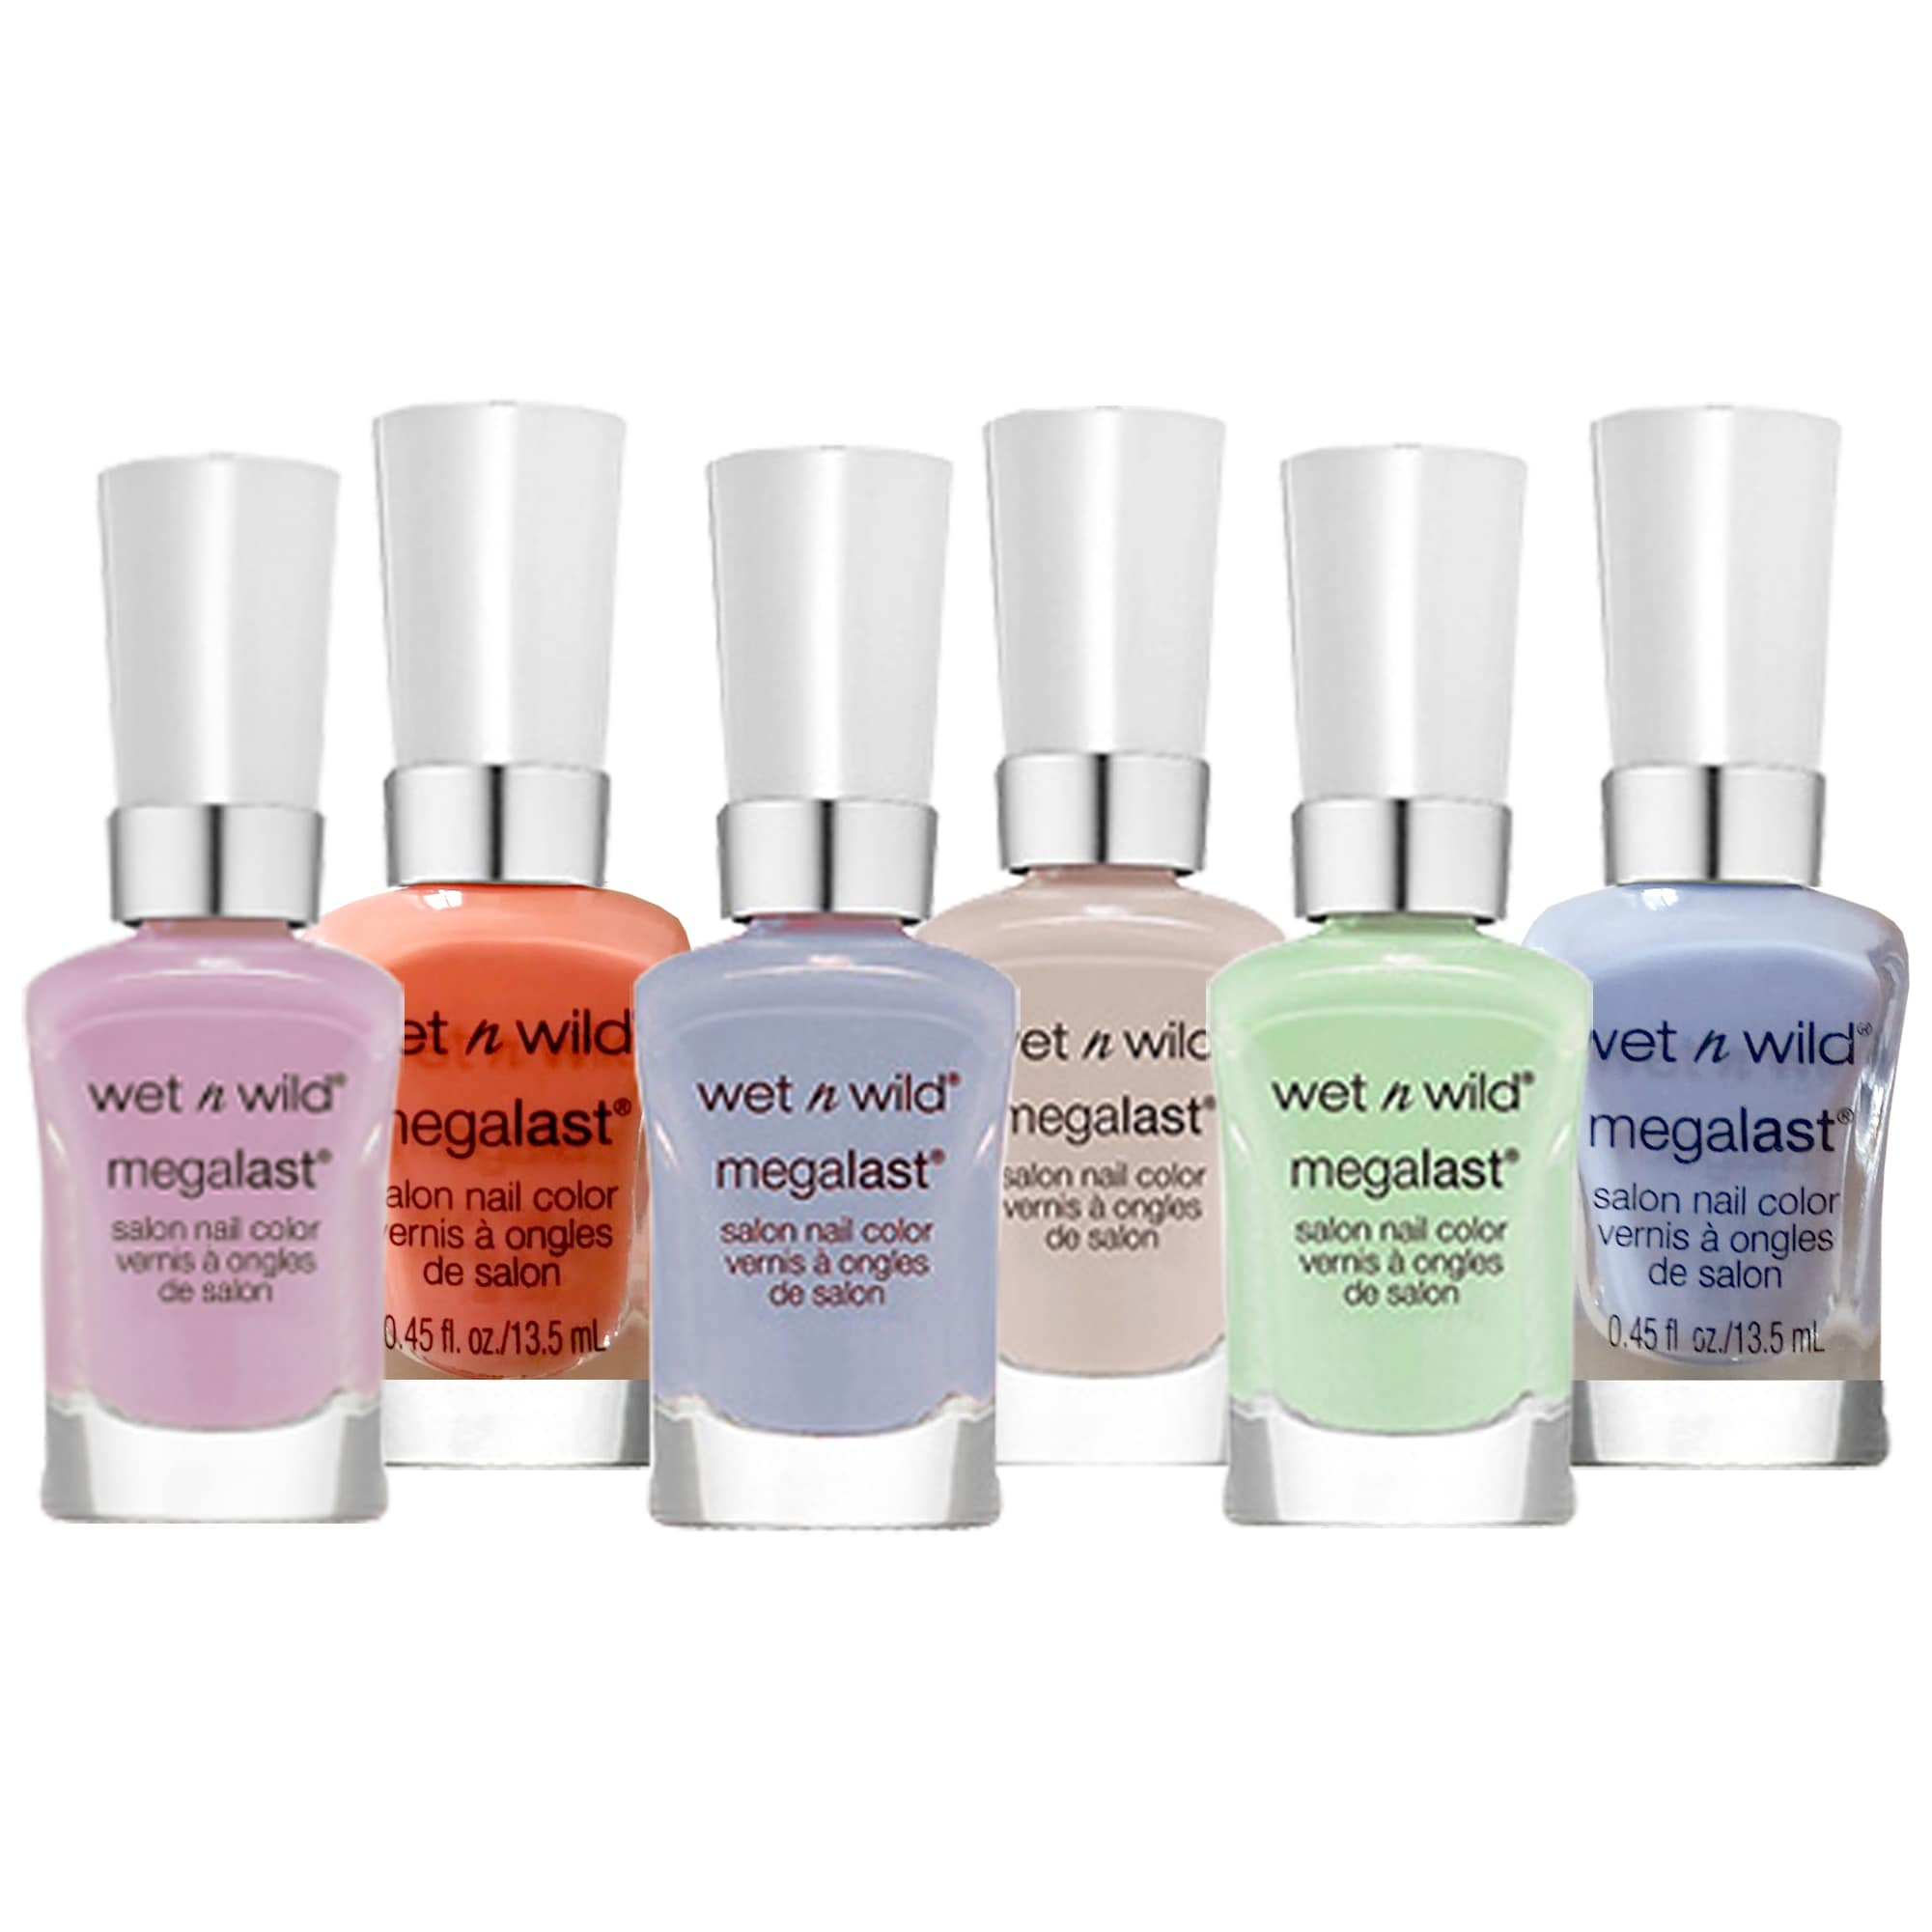 Shop Wet N Wild Mega Last Nail Color Polish Set 6 Piece Collection Megalast Free Shipping On Orders Over 45 11669450